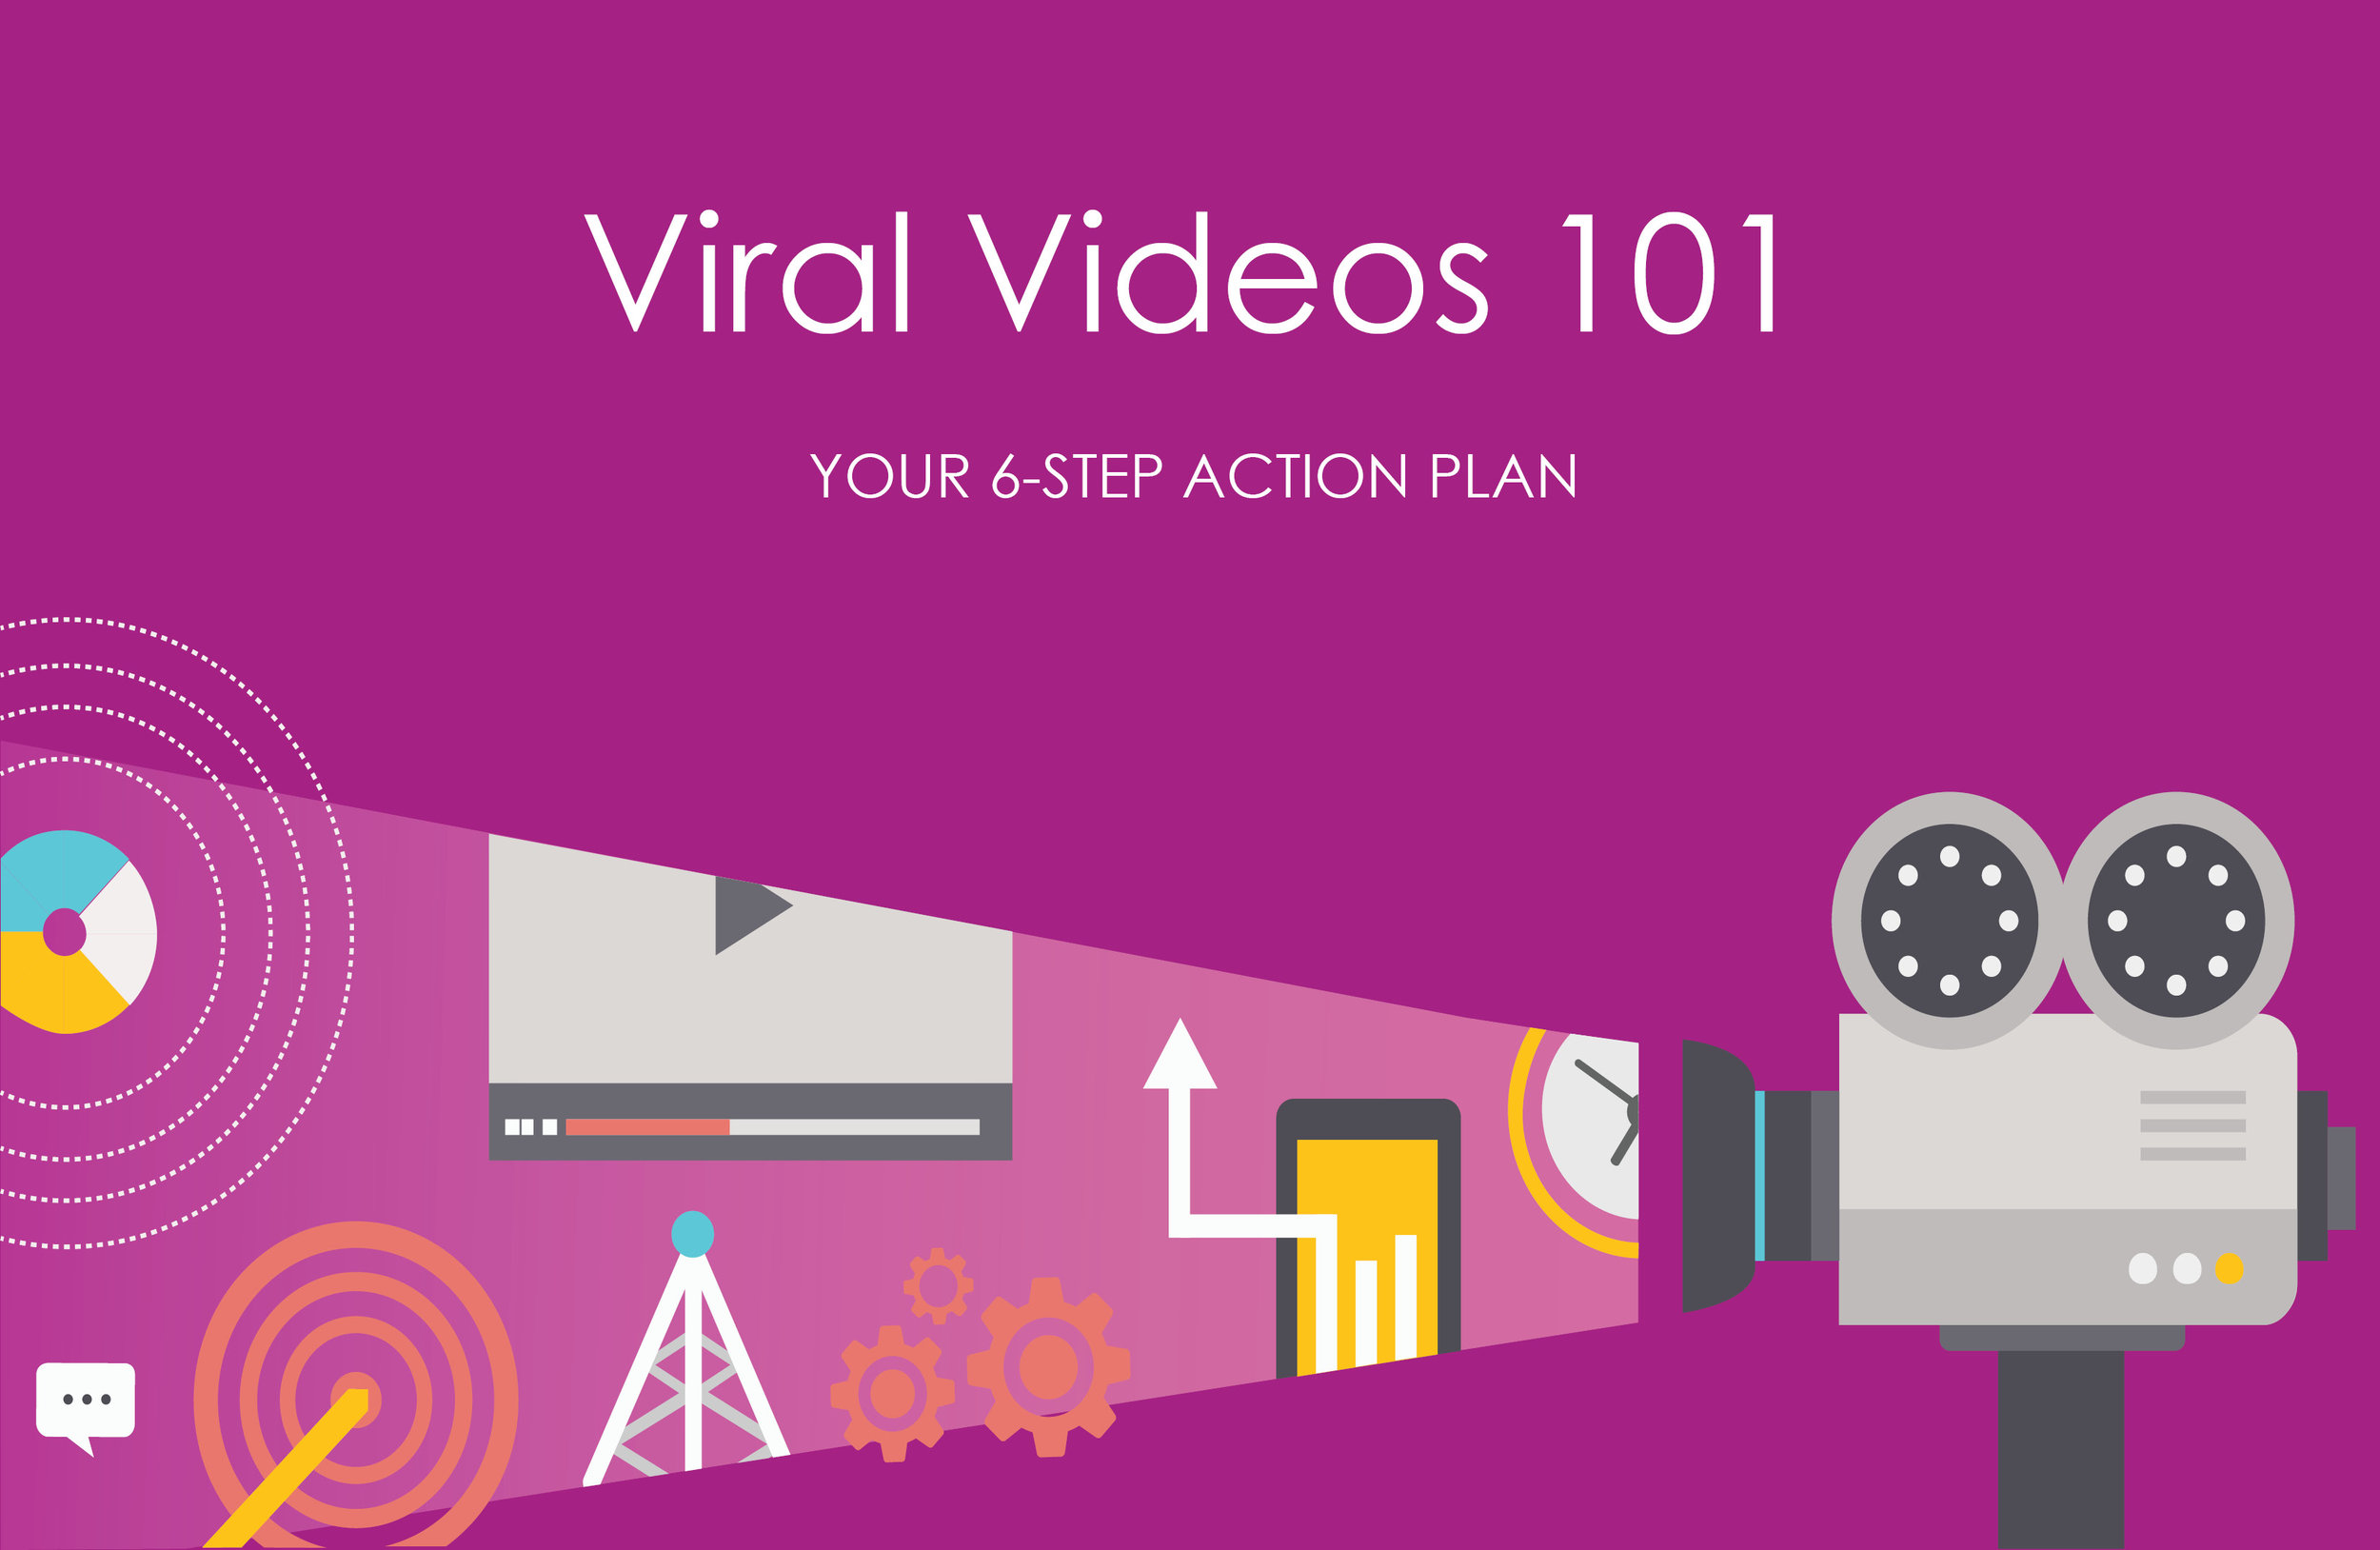 viral-videos-101-6-step-action-plan